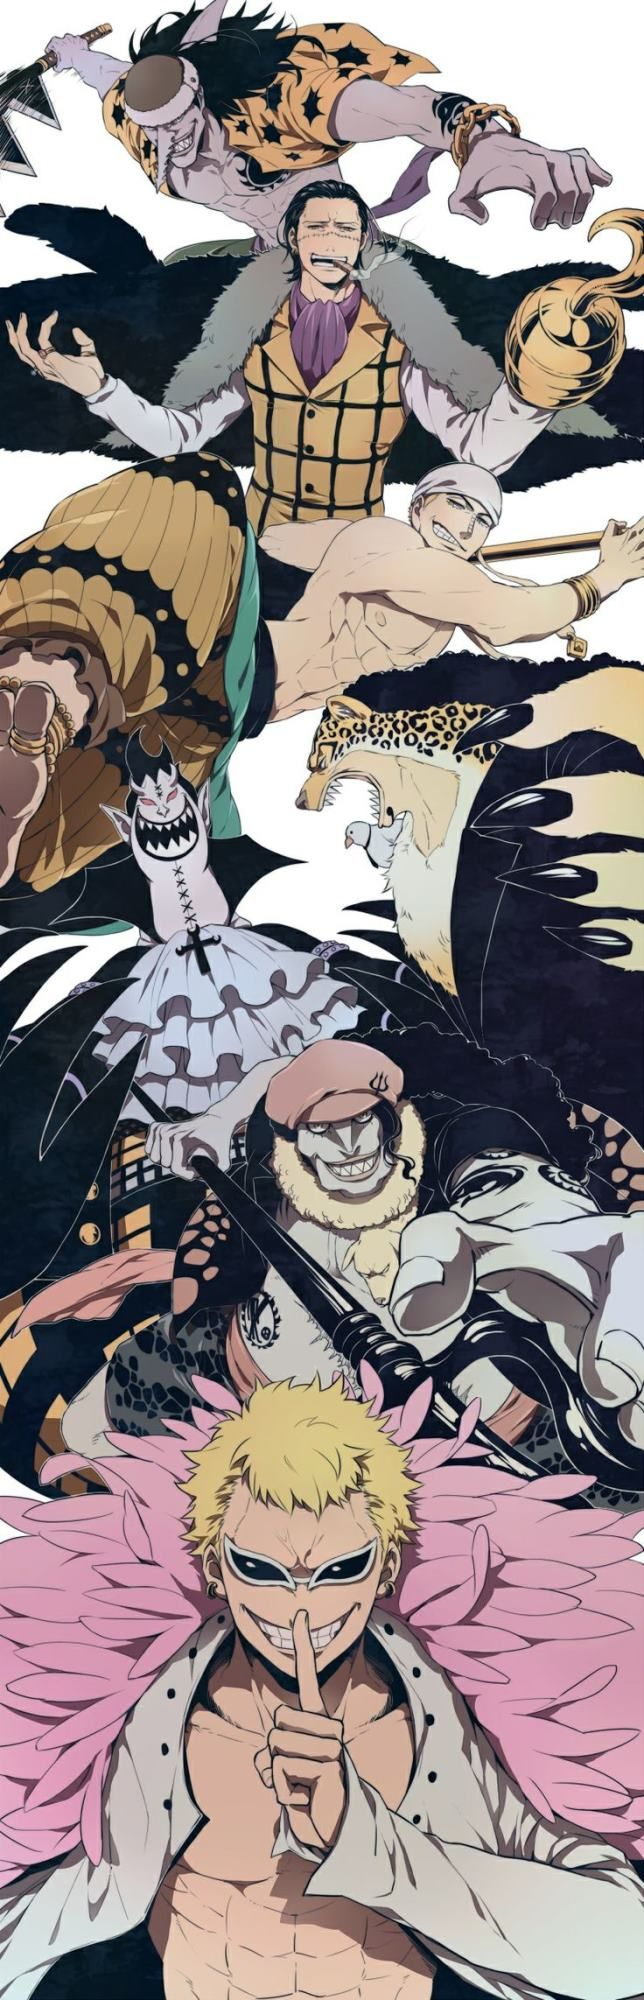 ONE PIECE, Strong Boss, Arlong, Crocodile, Enel,  Rob Lucci, Gecko Moria, Hody Jones, Donquixote Doflamingo